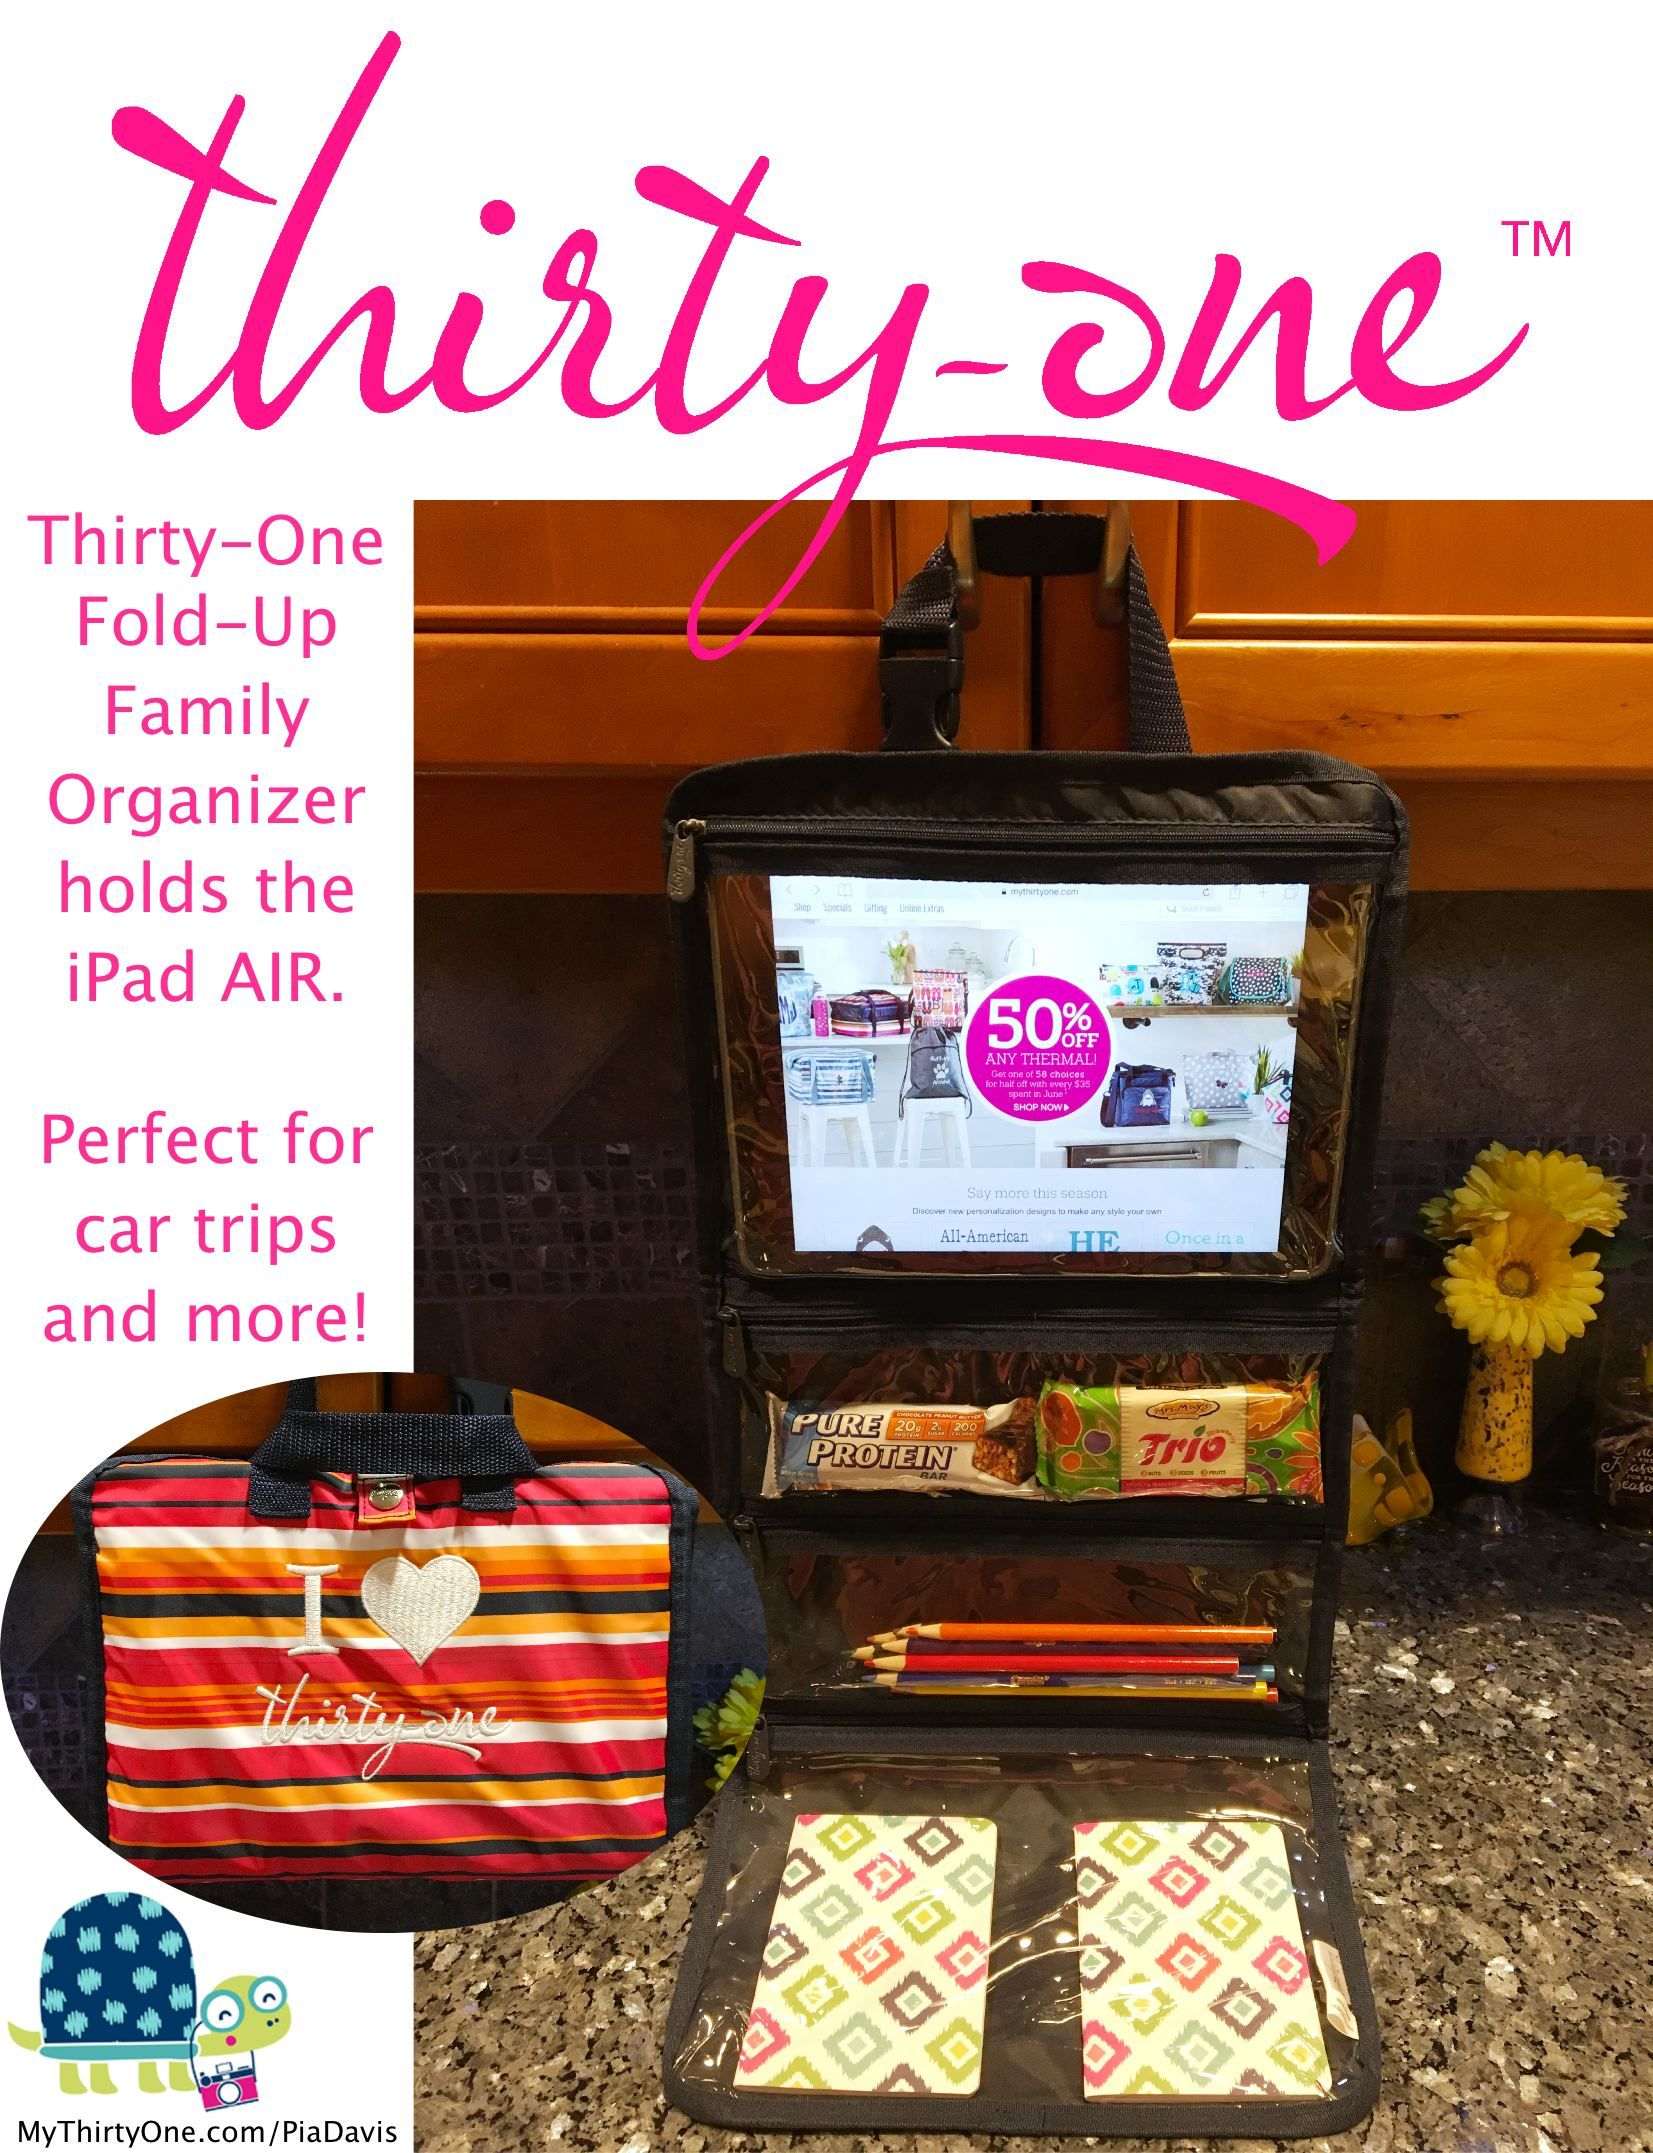 Thirty One Fold Up Family Organizer Holds An Ipad Air Perfect For